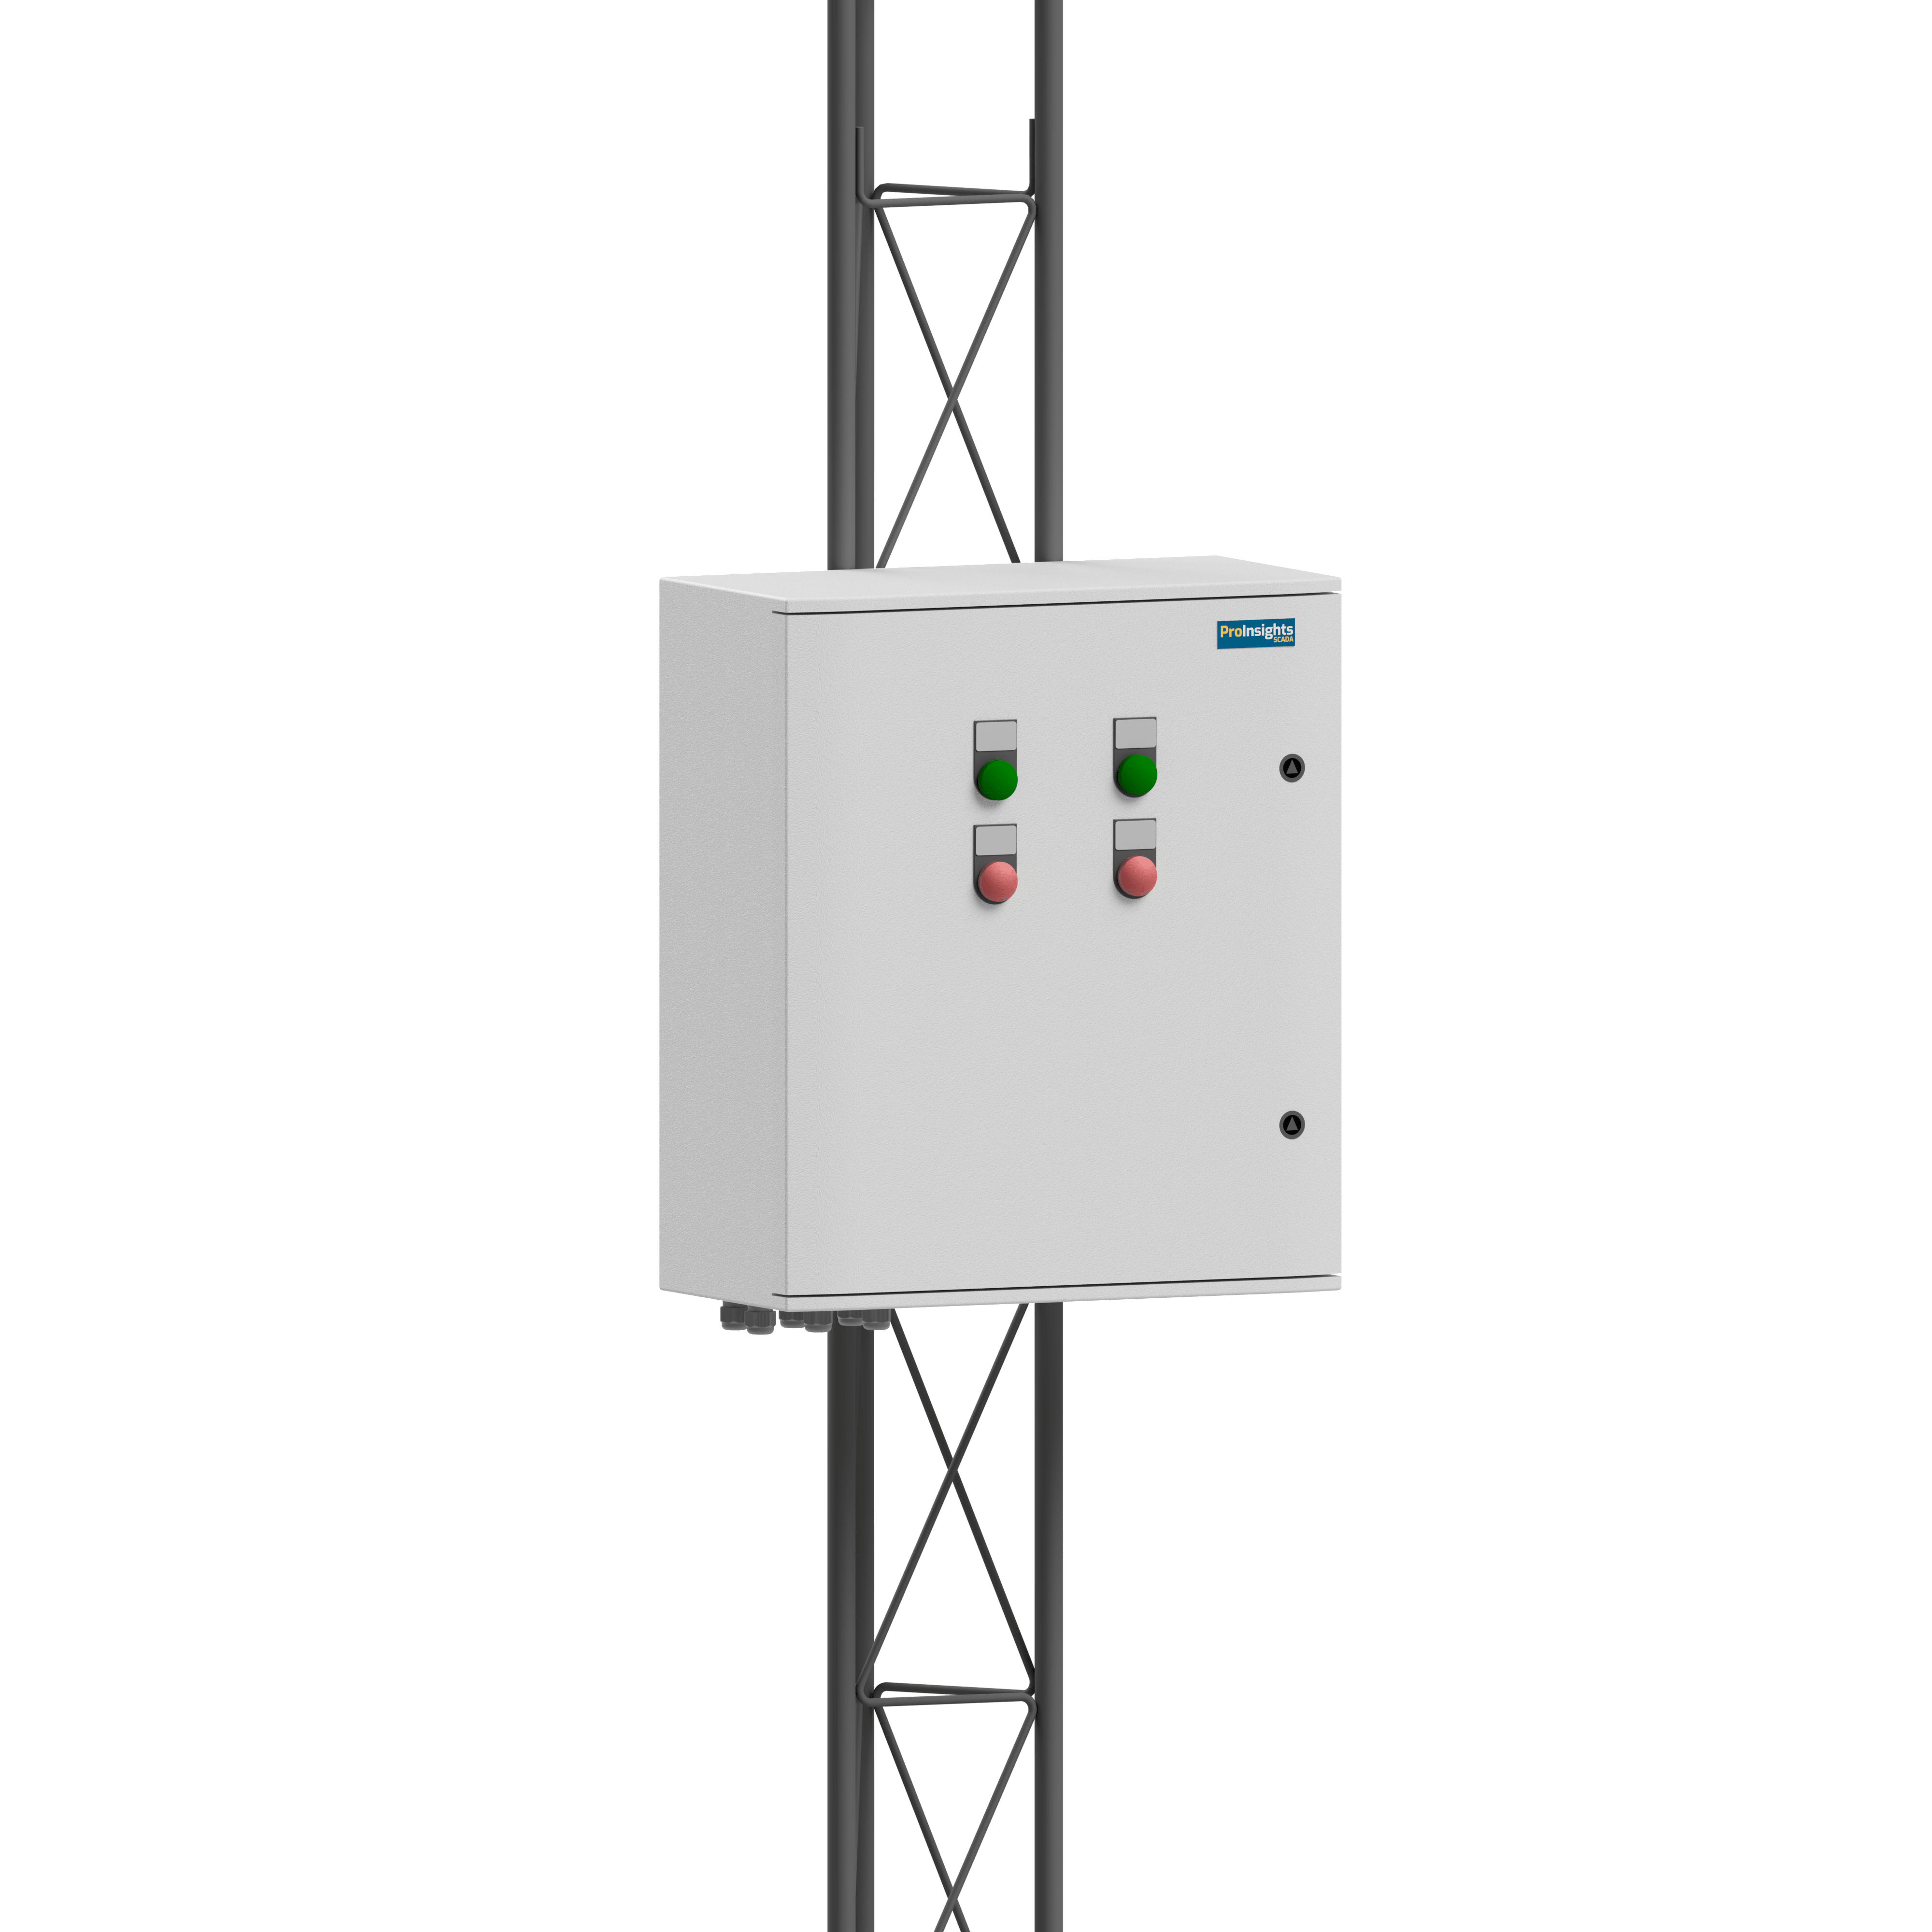 Scada trackers by PVH